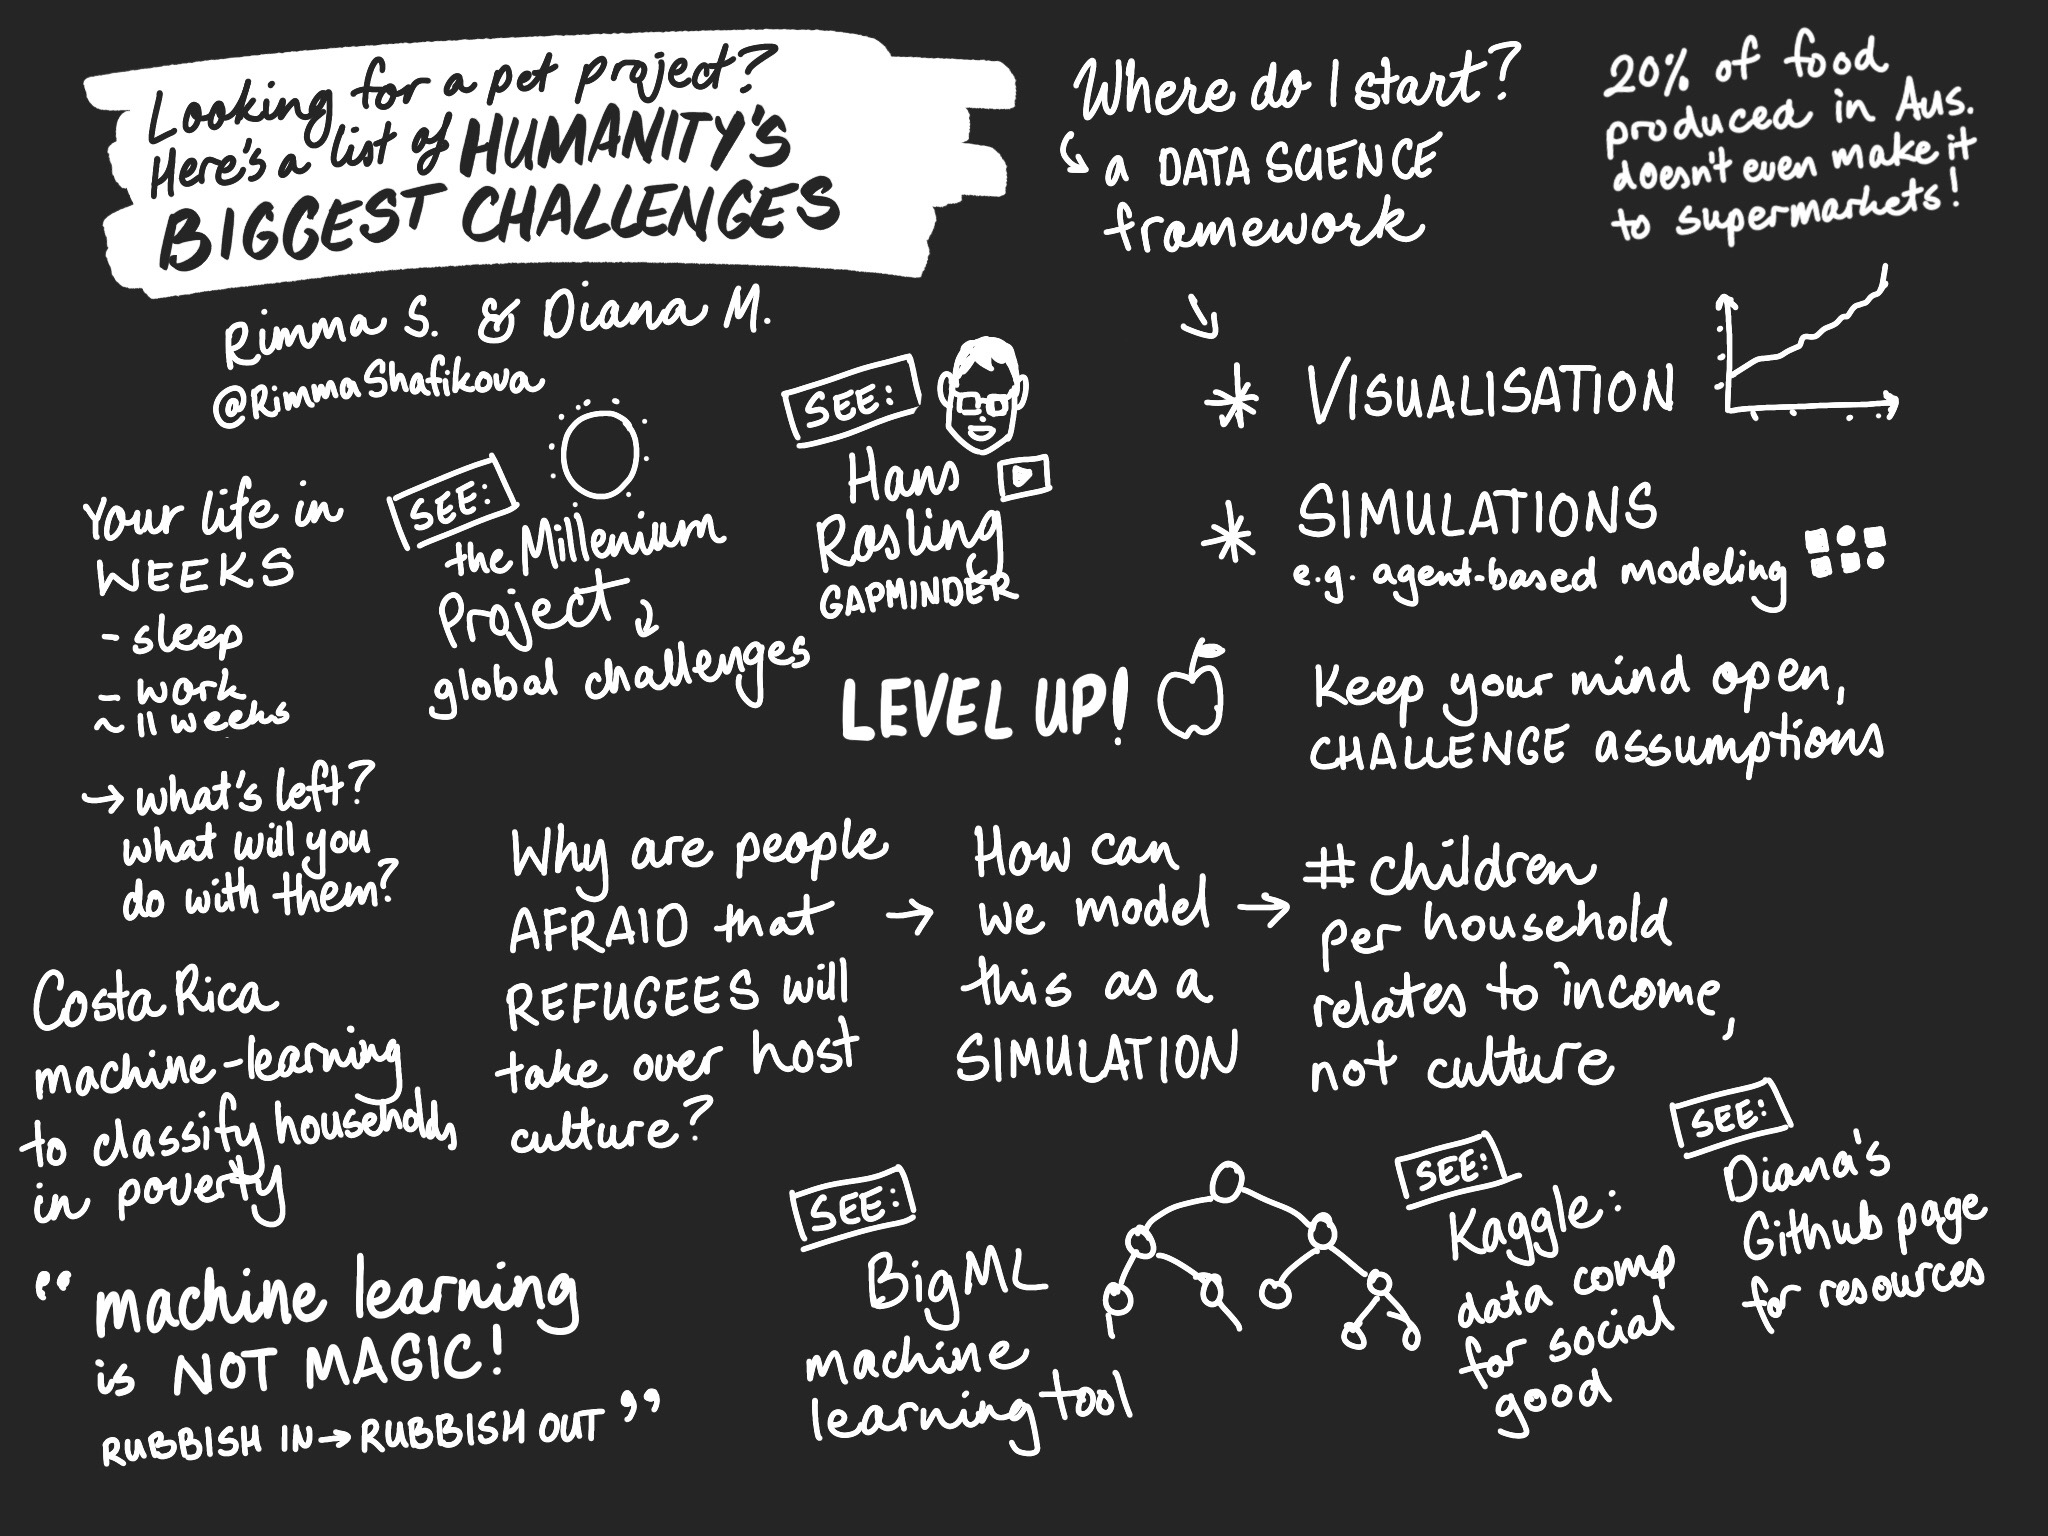 Sketchnotes of the talk Looking for a pet project? Here's a list of humanity's biggest challenges.